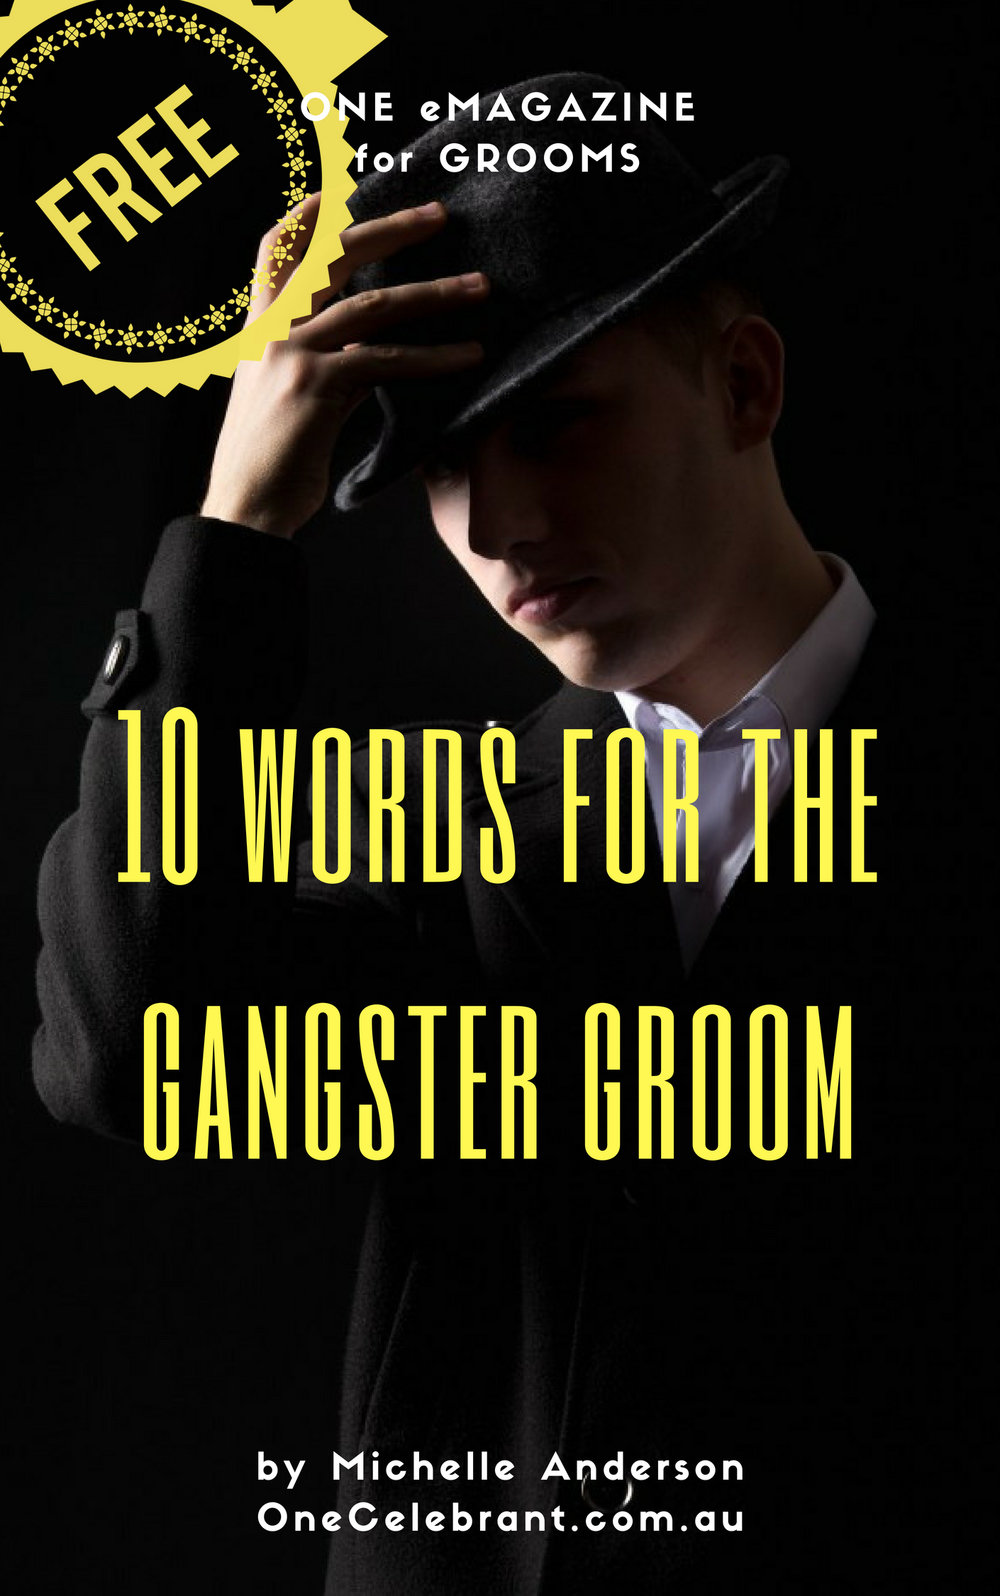 "Click the image for a FREE copy of ""10 Words for the Gangster Groom"" written by Michelle Anderson. Sure to make any groom cool and calm."